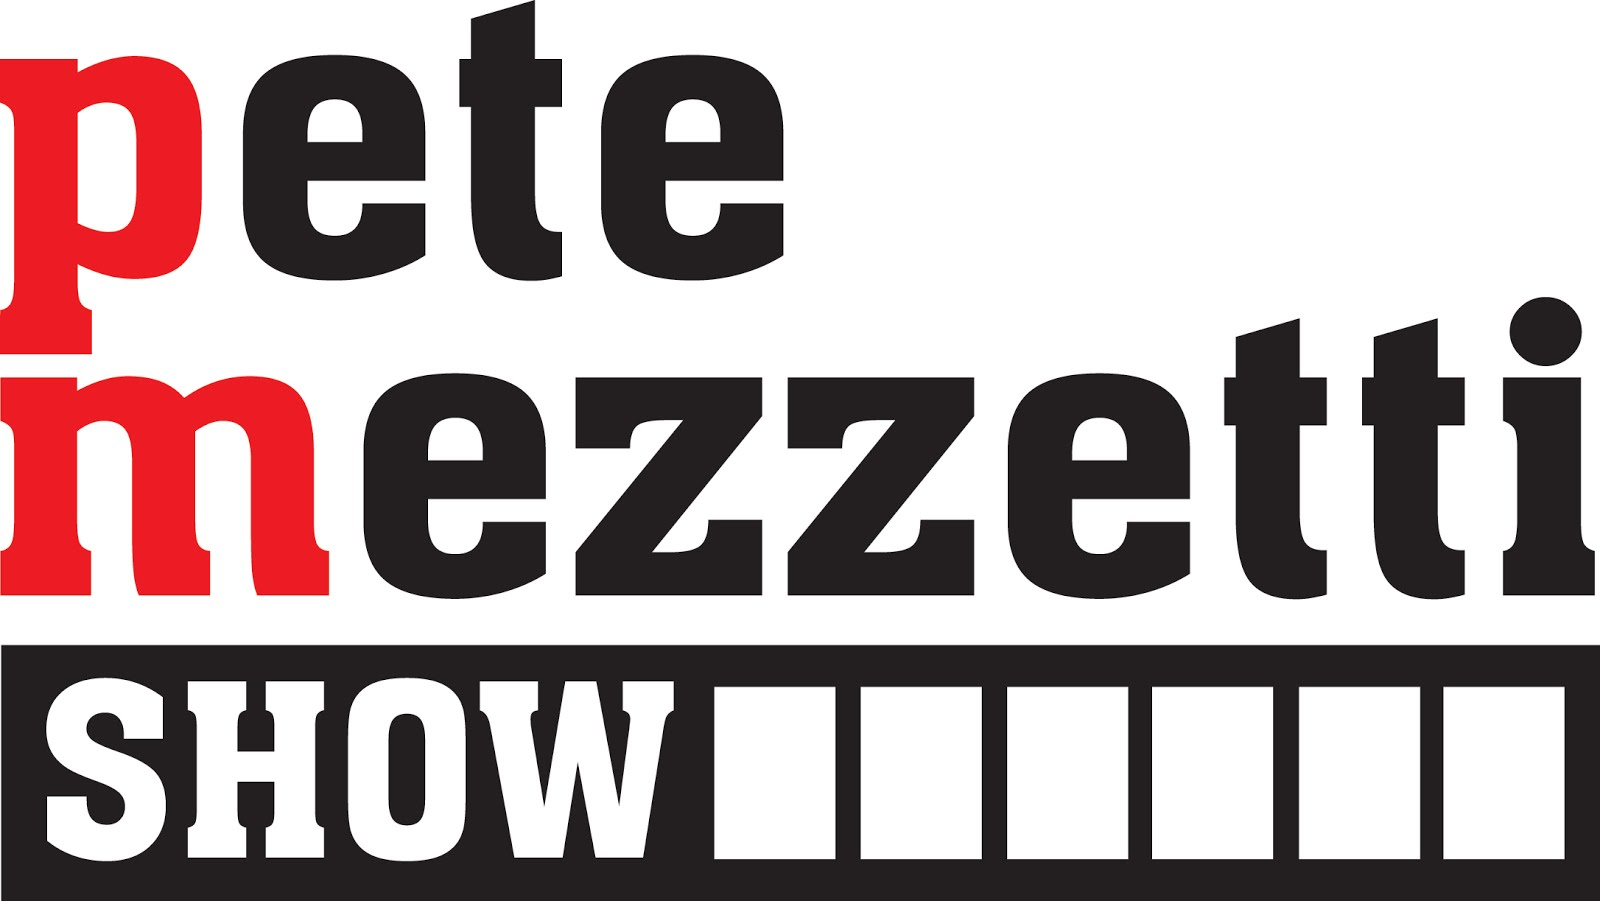 The Pete Mezzetti Media Network